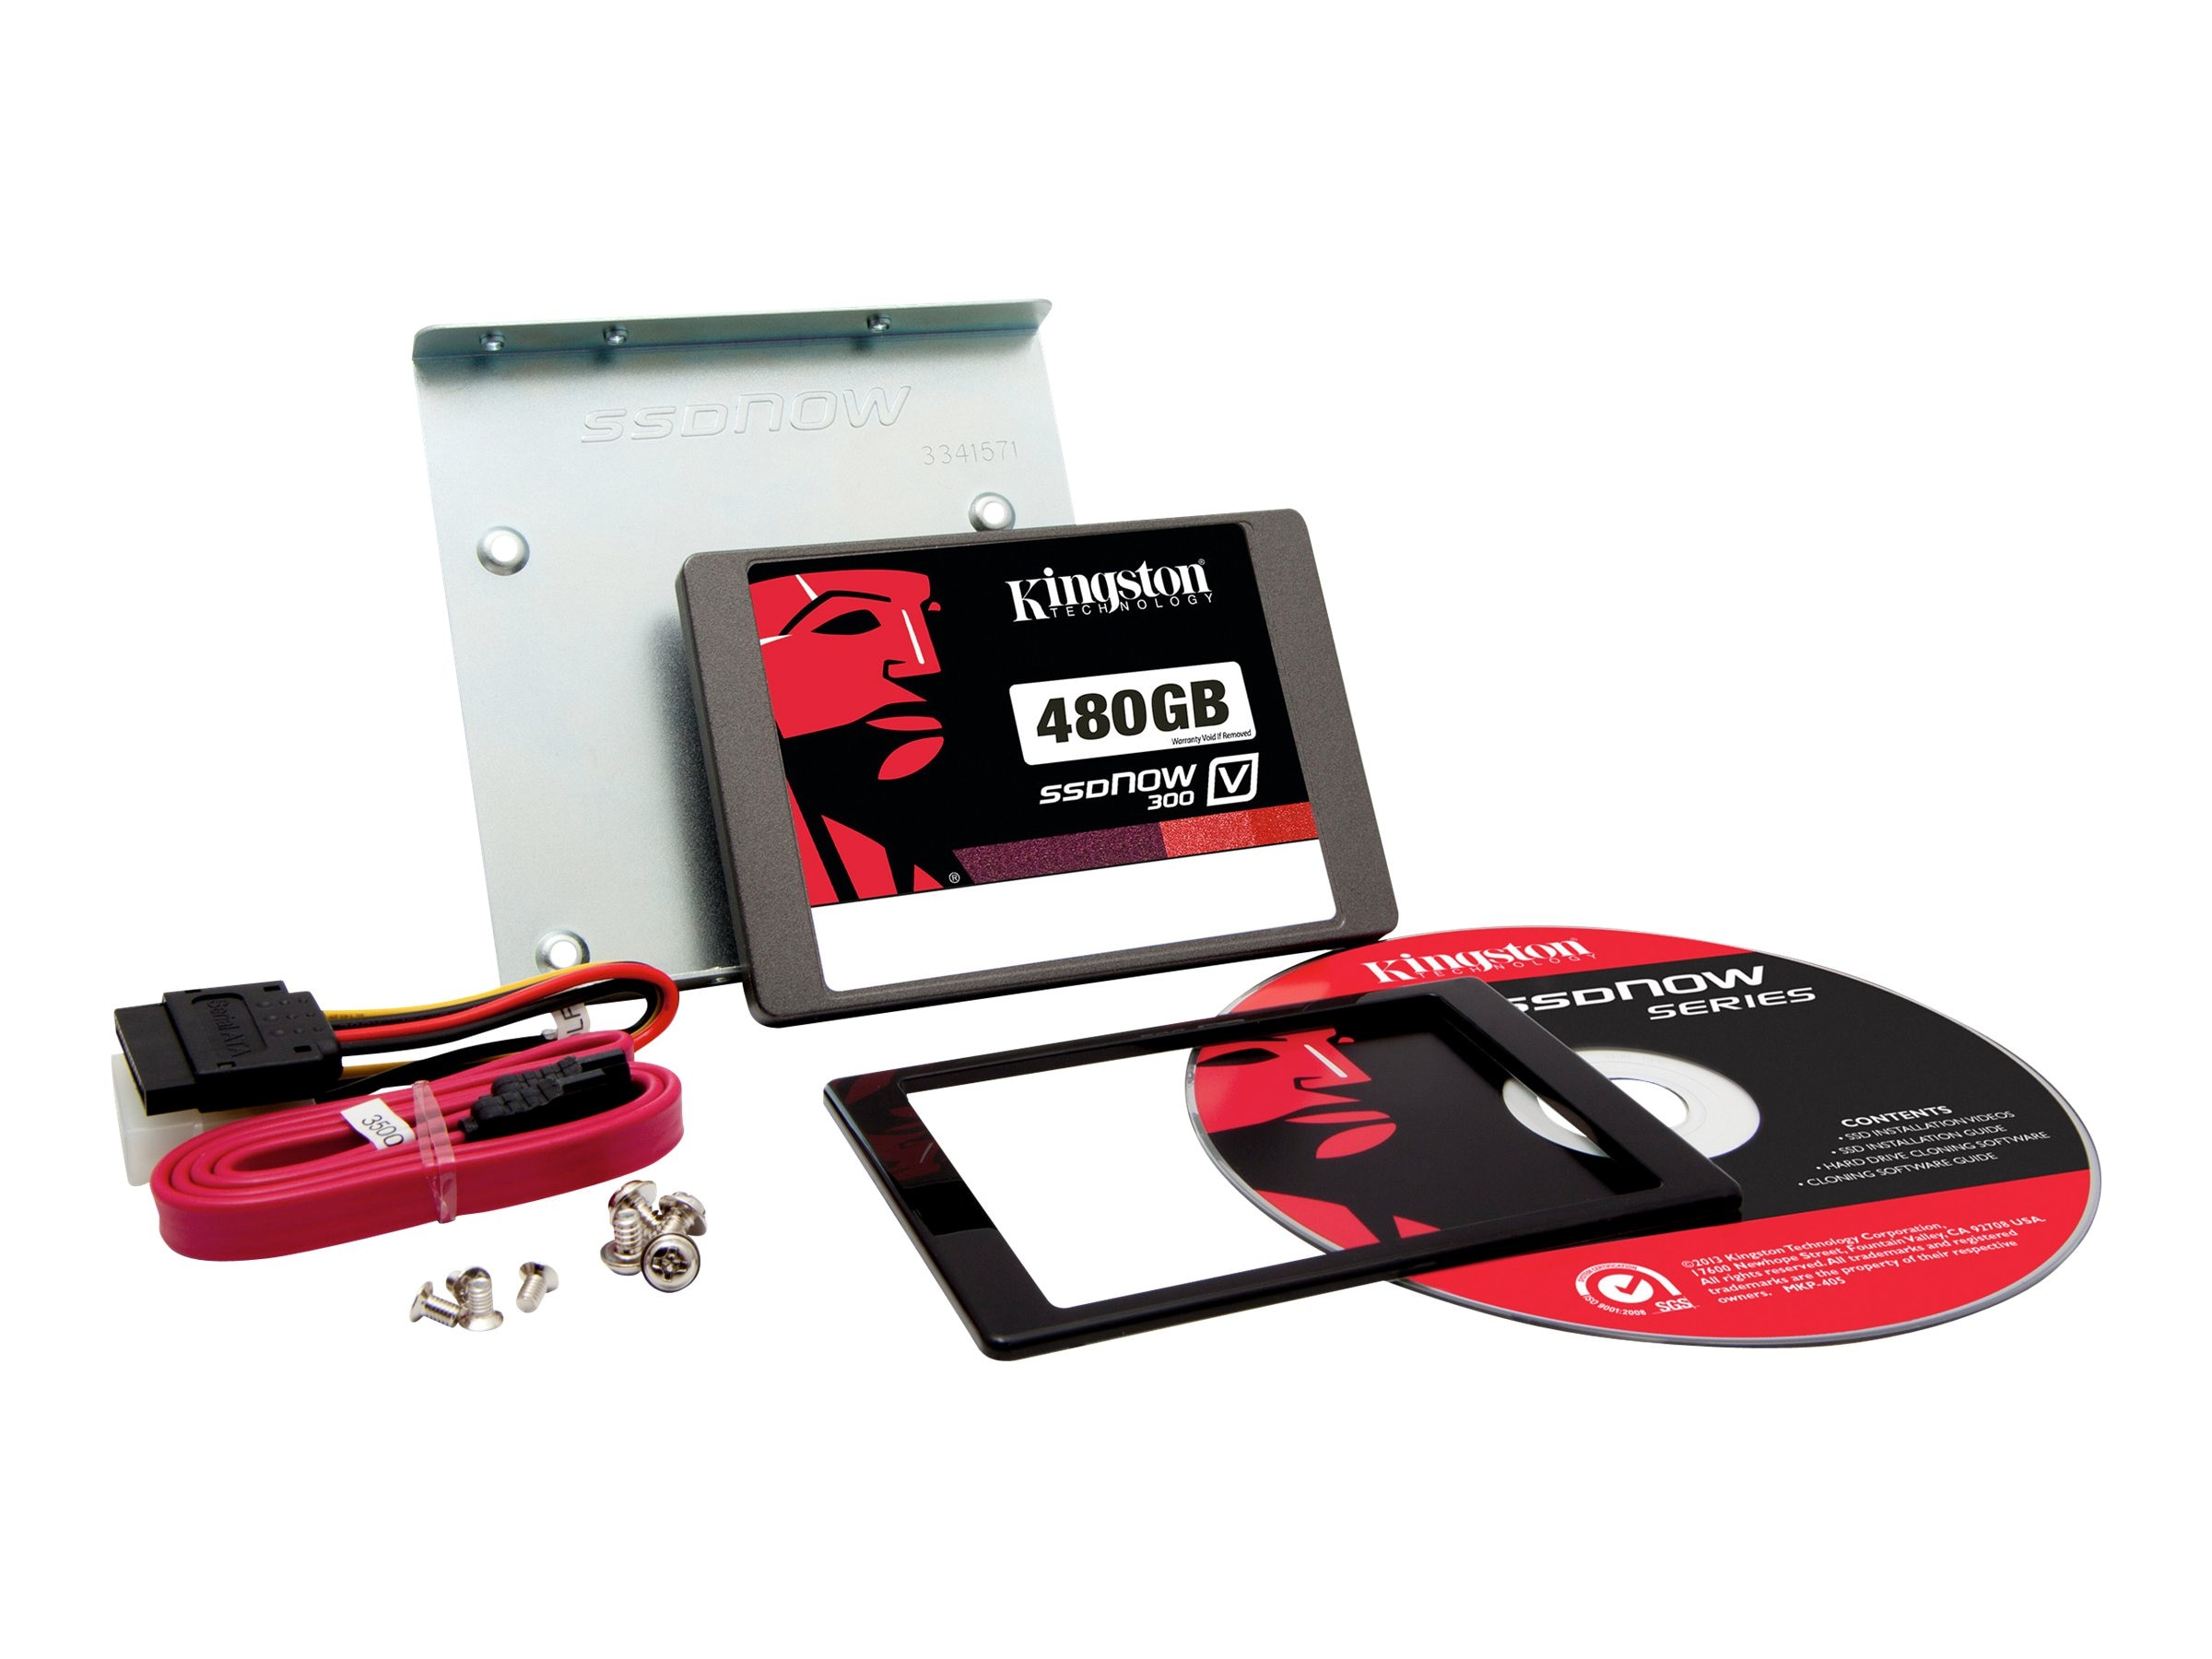 Kingston 480GB SSDNow V300 SATA 6Gb s 2.5 Internal Solid State Drive Desktop Bundle Kit